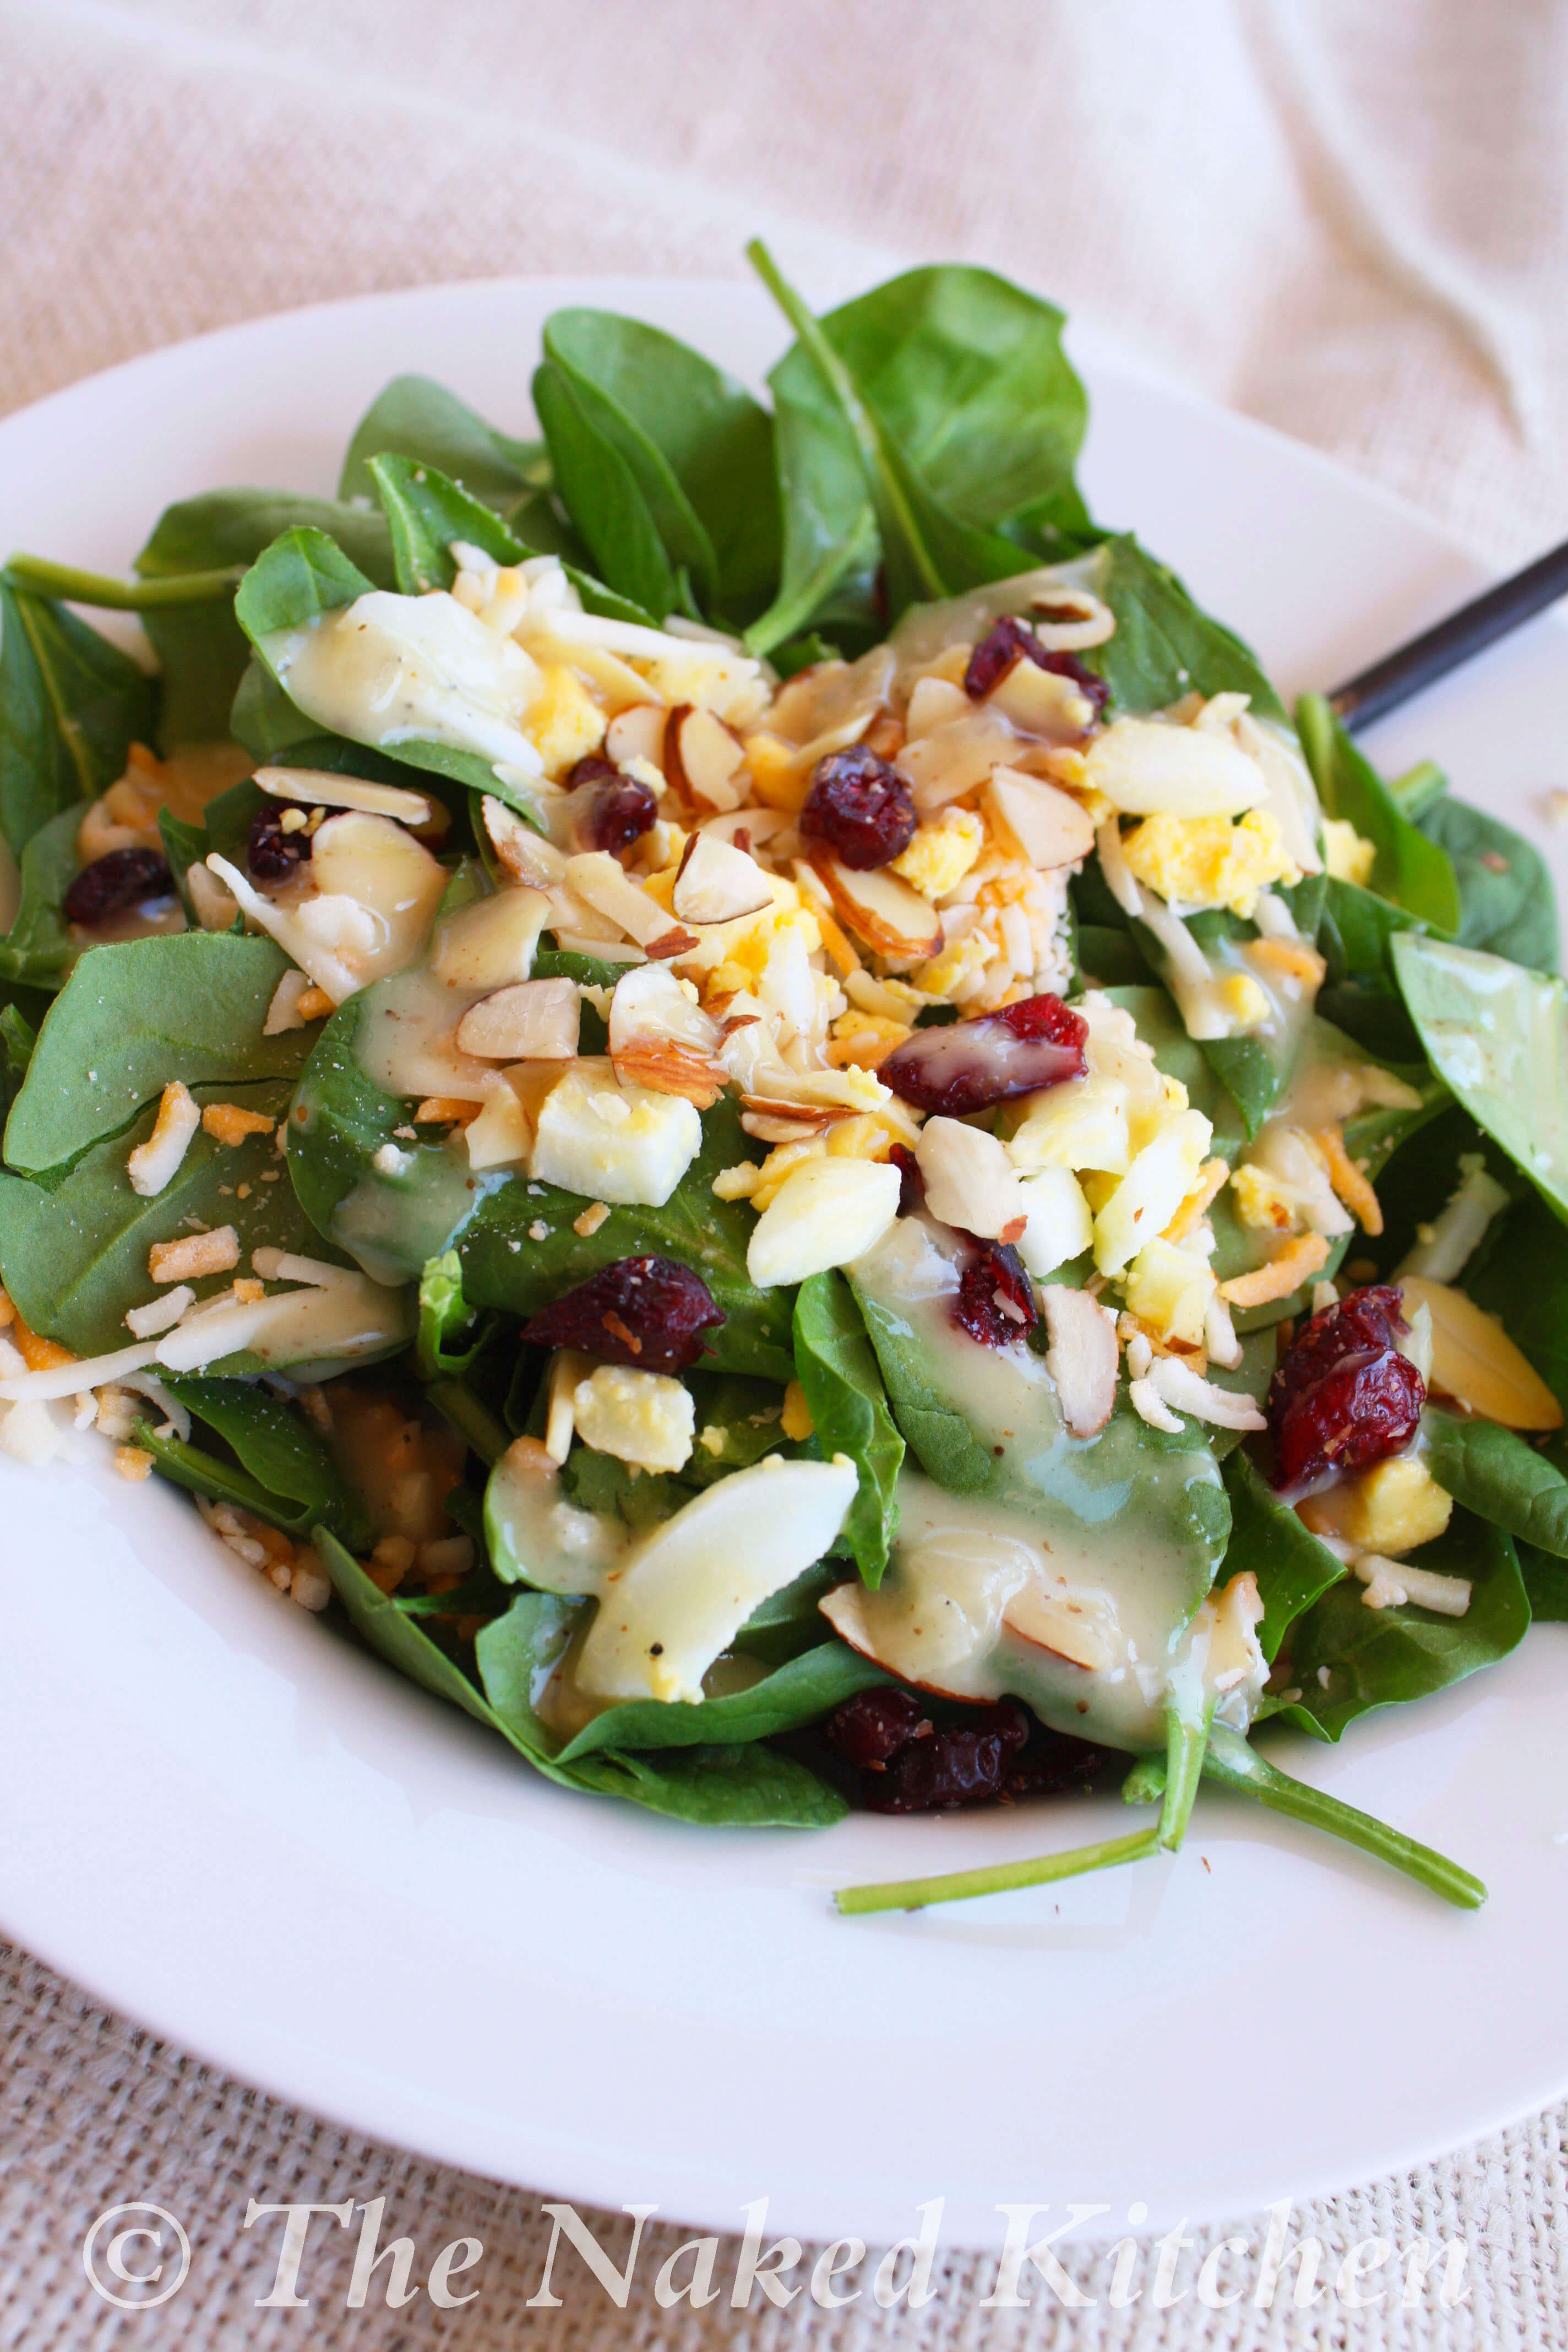 Spinach Salad with Smoky Sweet and Sour Dressing